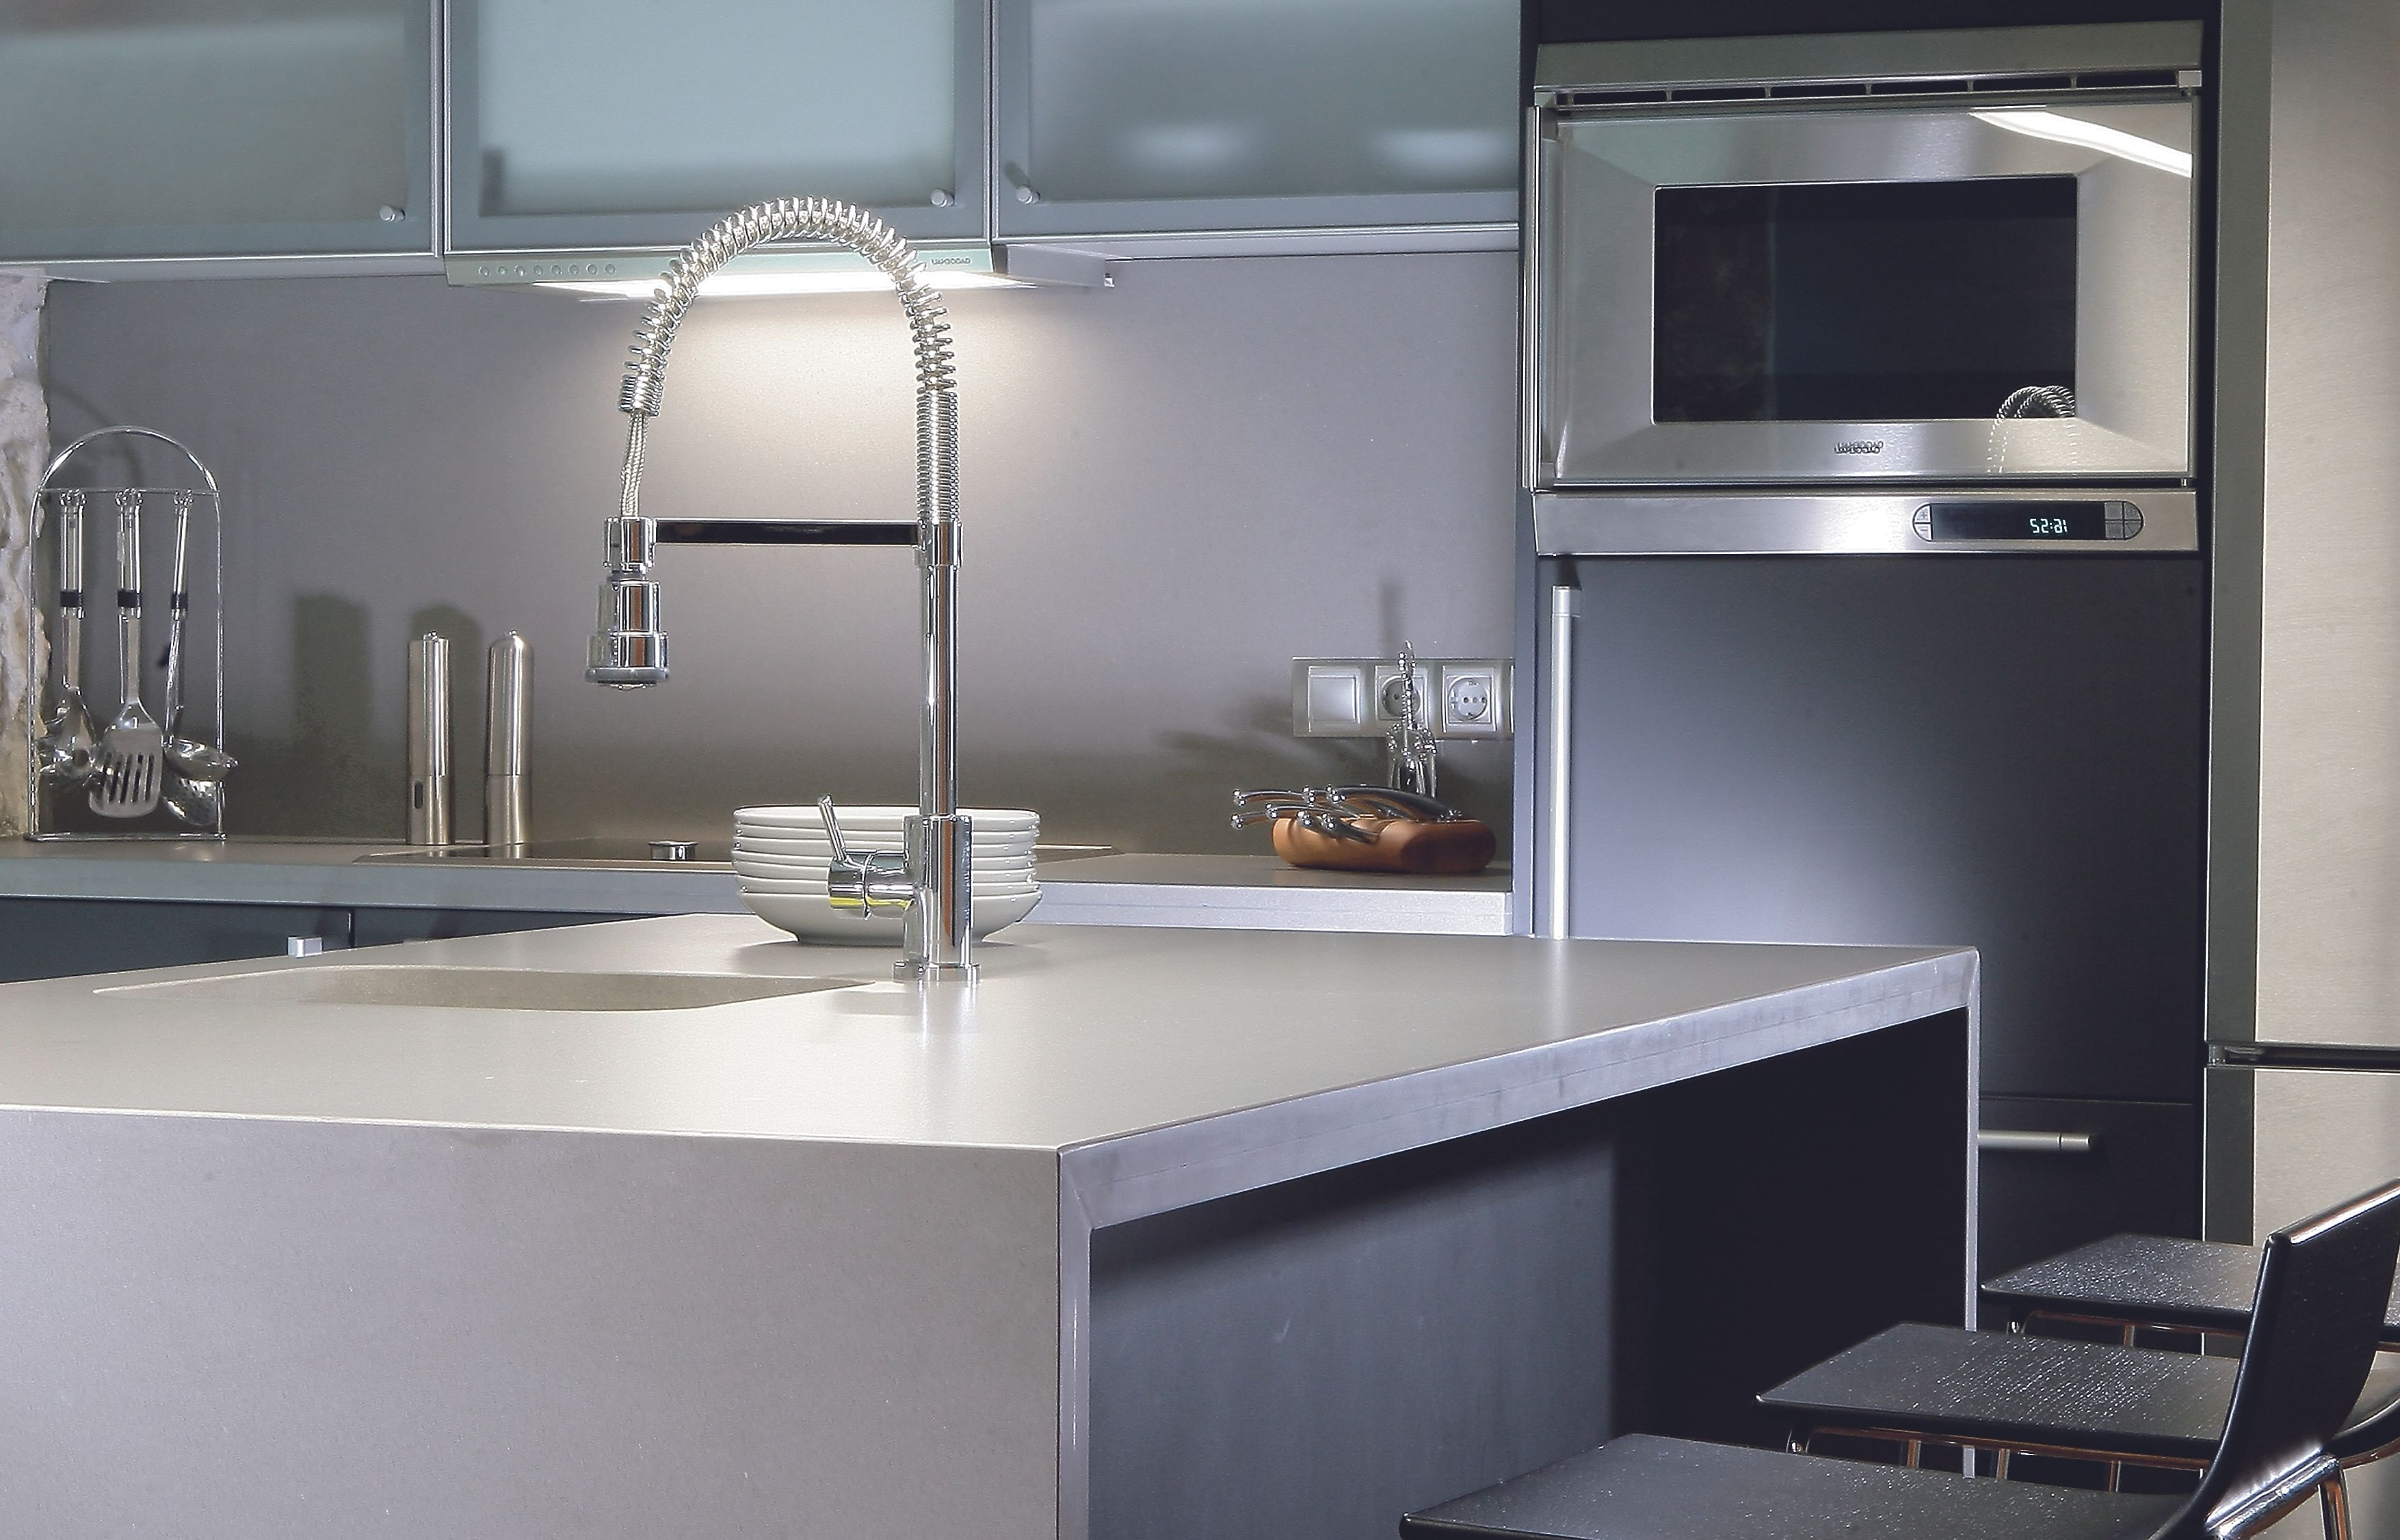 Cleaner countertops in your kitchen and bathroom | Home & Decor ...